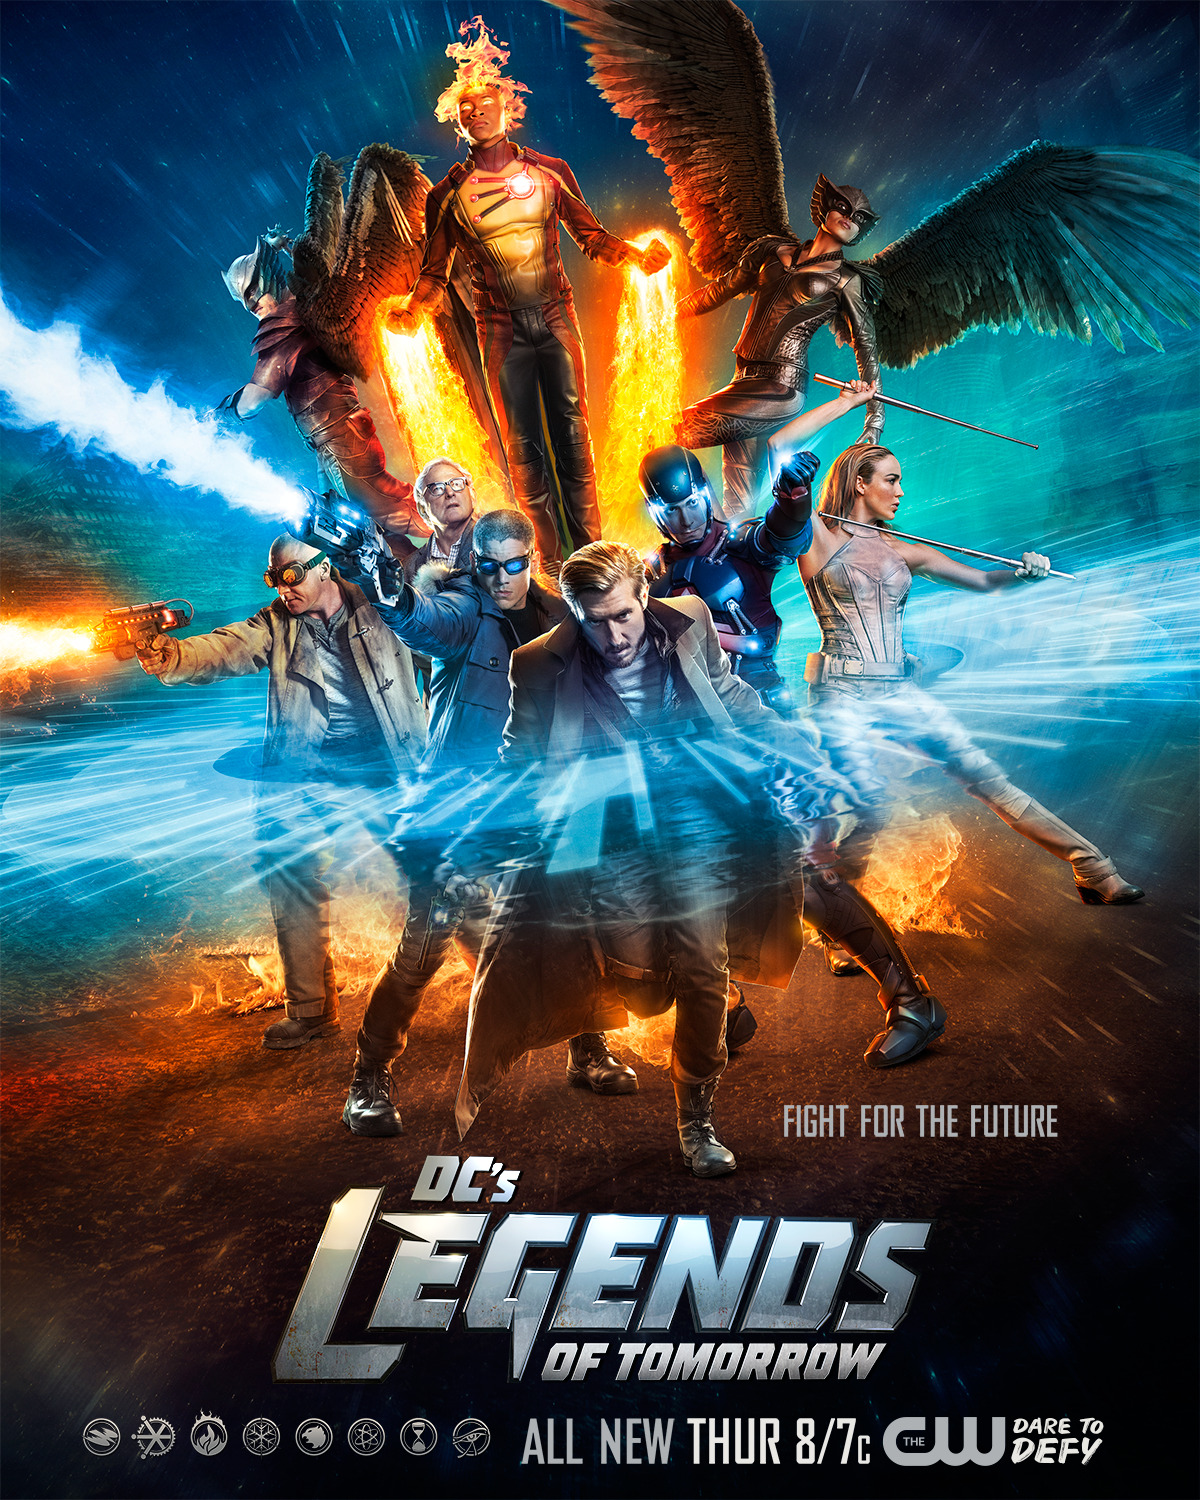 DCs_legends_of_tonorrow_poster_large